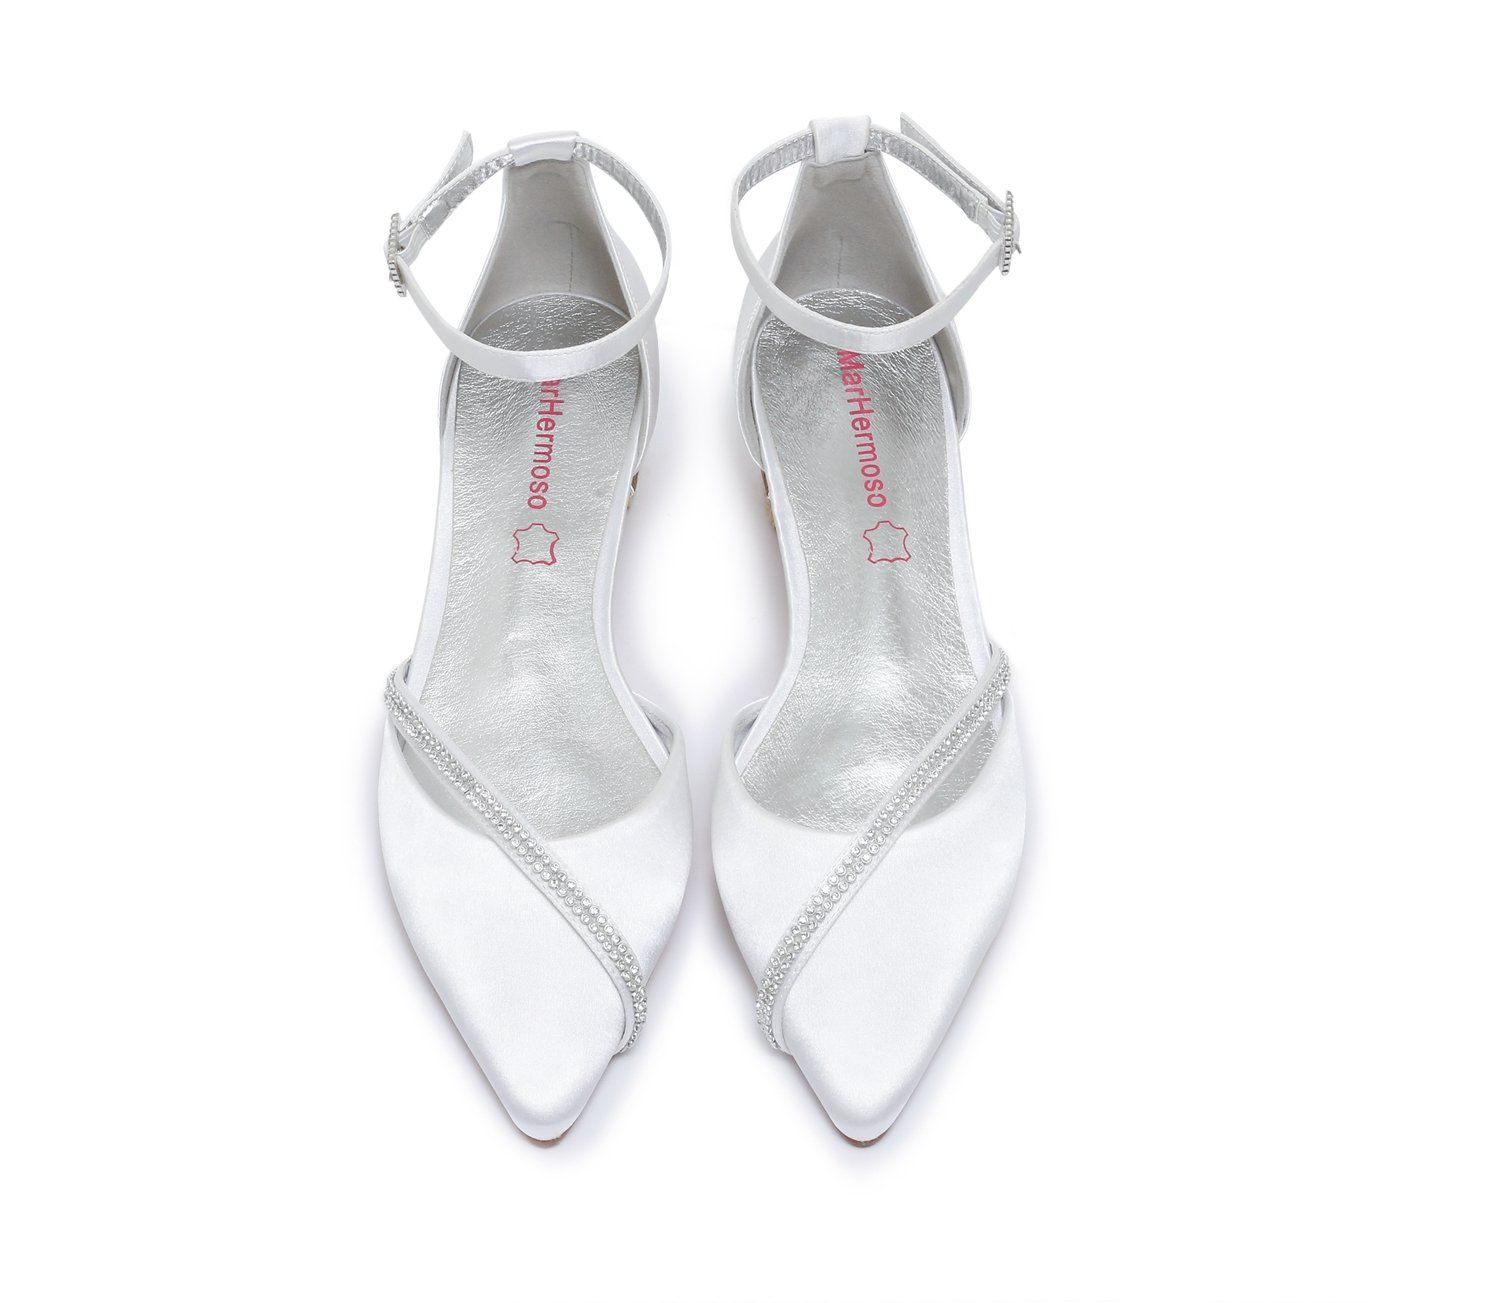 f0650acbfb8a MarHermoso Womens Satin Ankle Strap Pointed Toe Rhinestones Comfort Flats  Wedding Bridal Shoes   See this